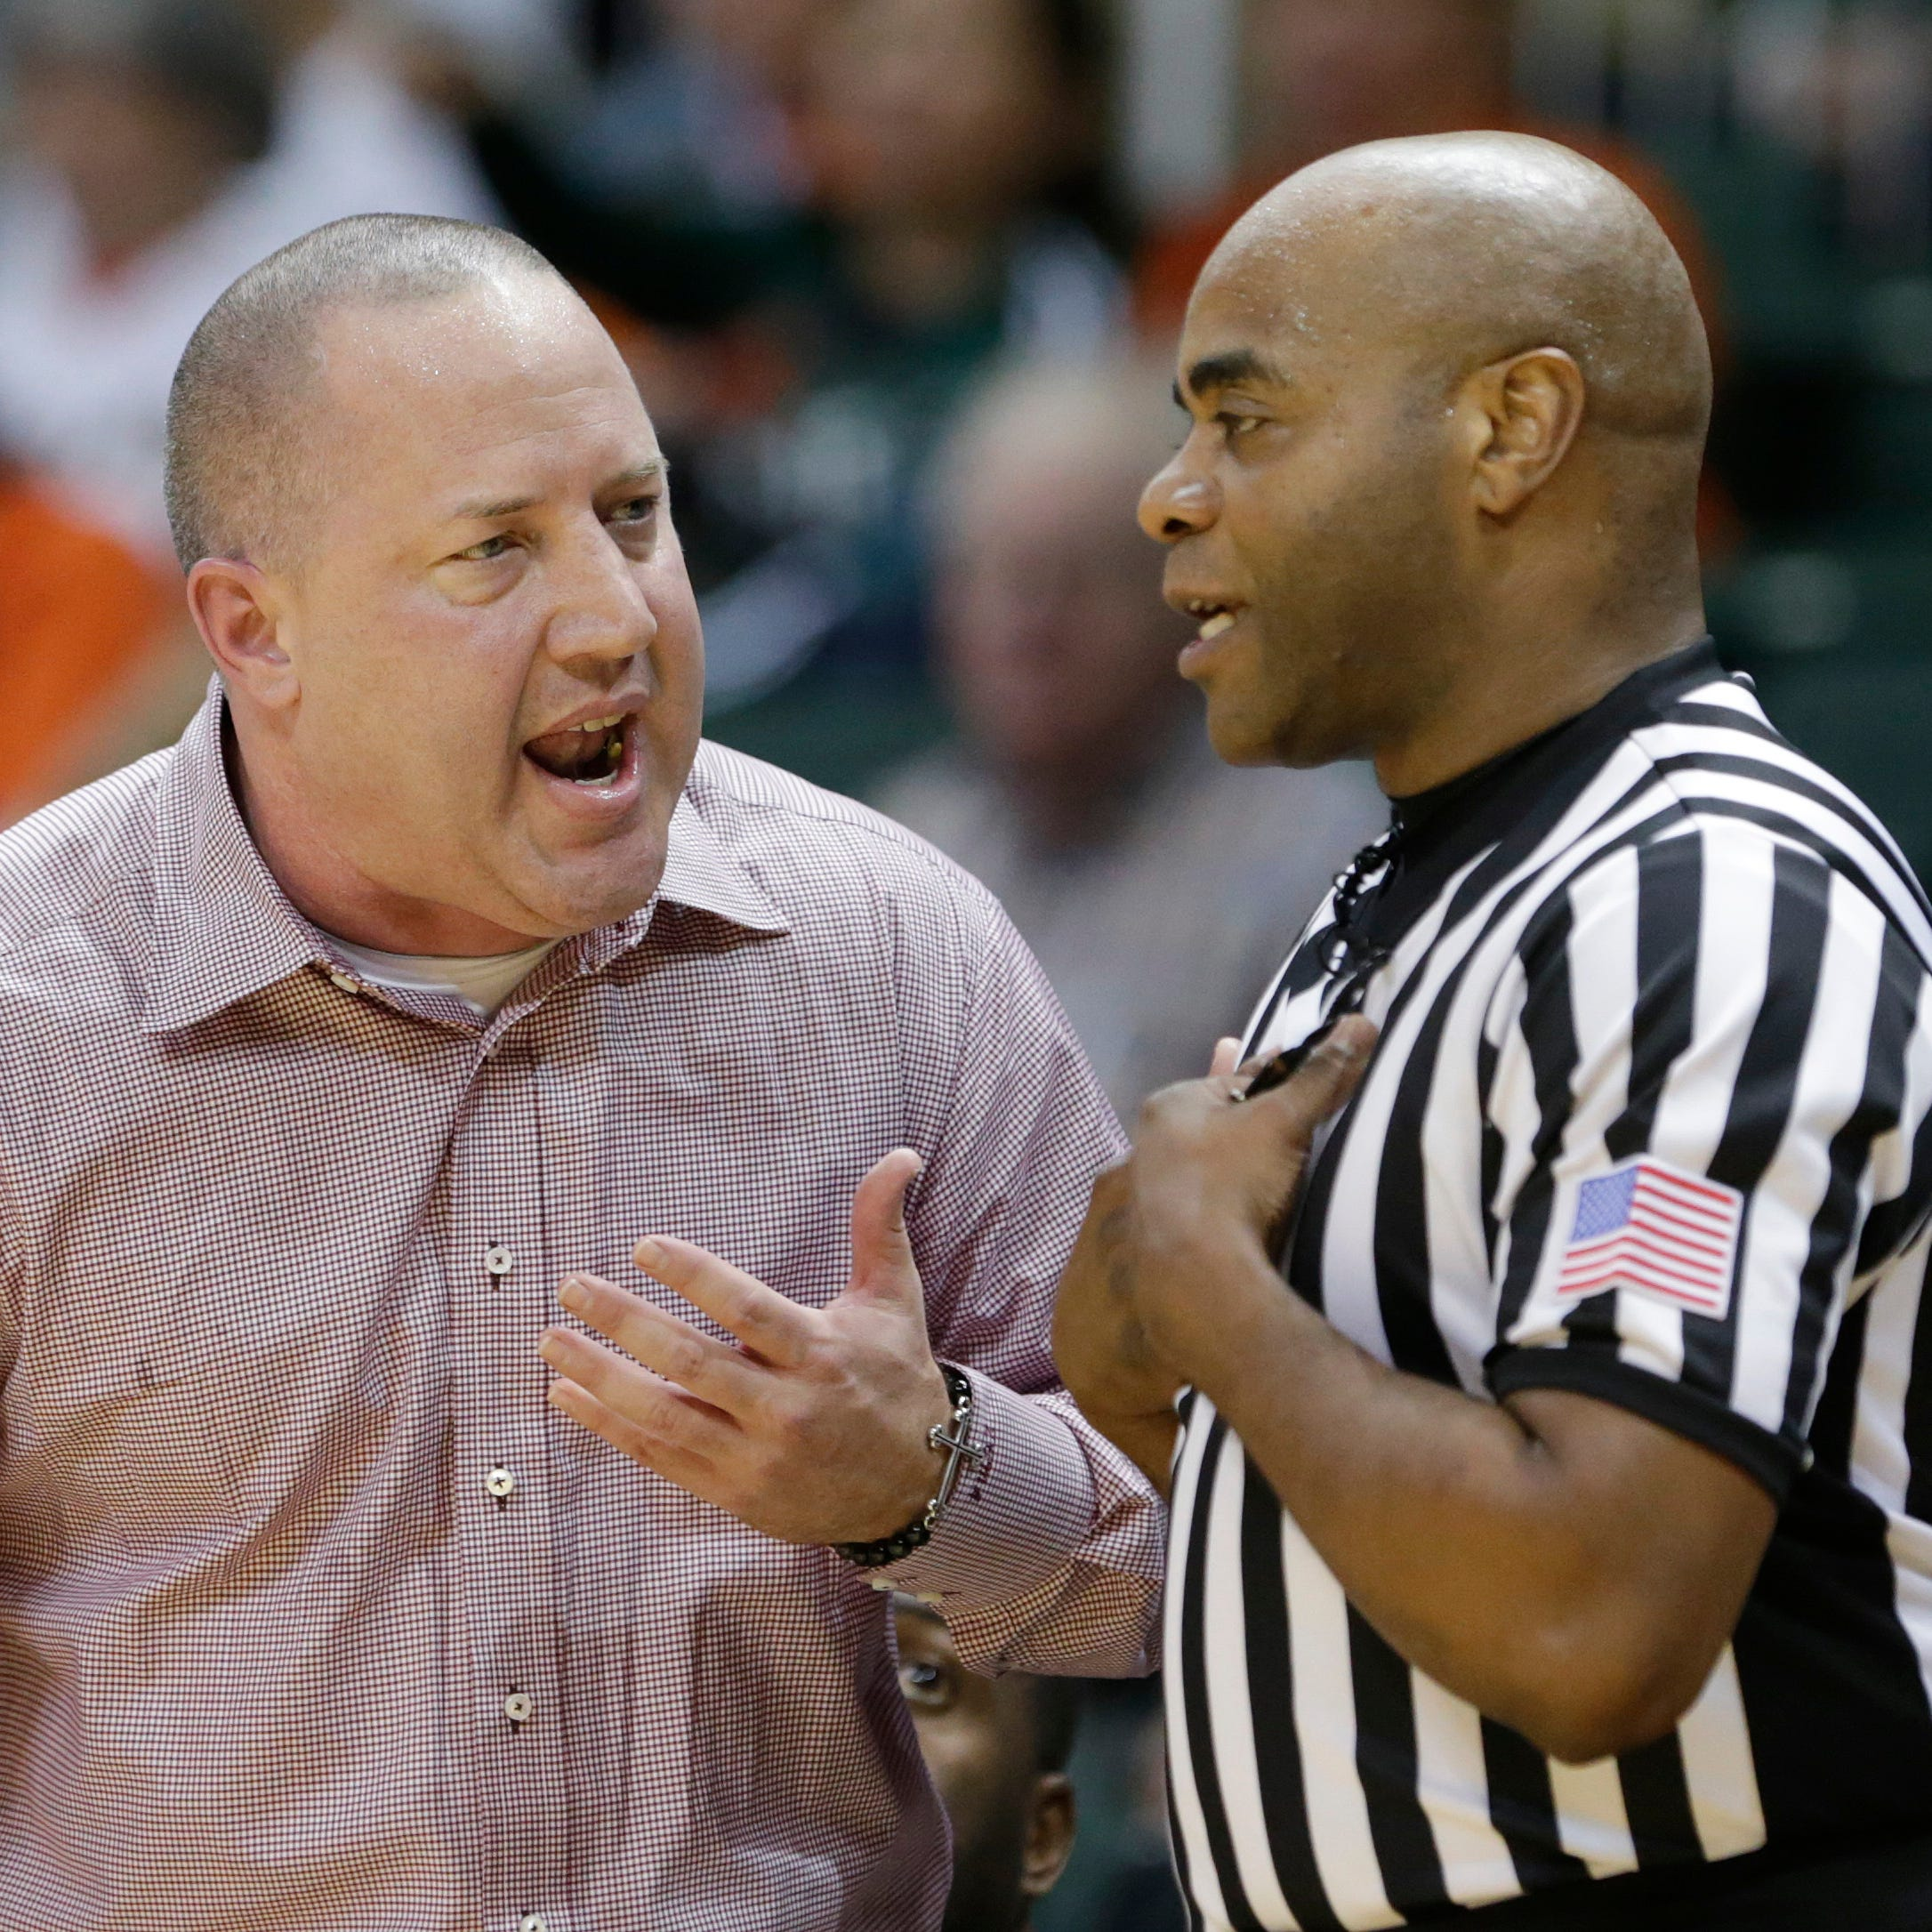 Local referee Jeffrey Anderson selected for Final Four